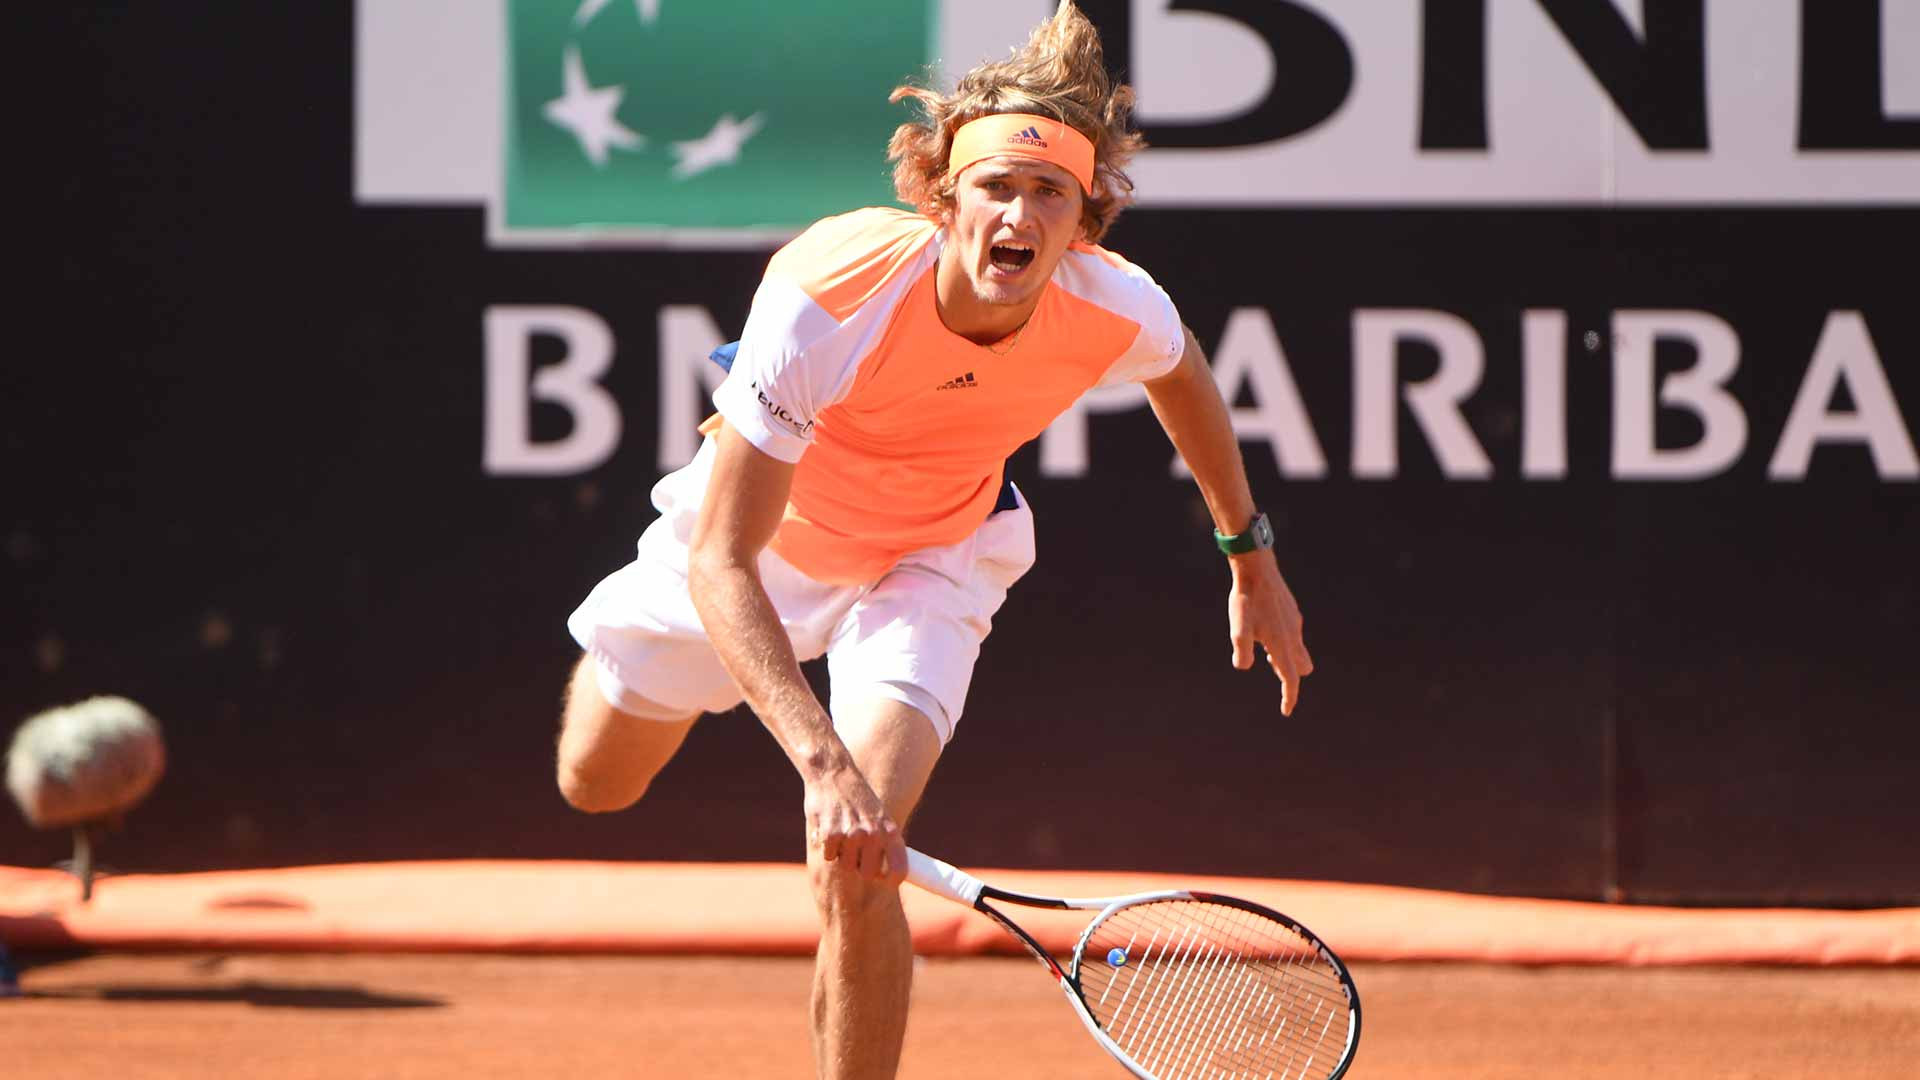 Alexander Zverev Picked up an Amazing Draw at 2017 French Open images